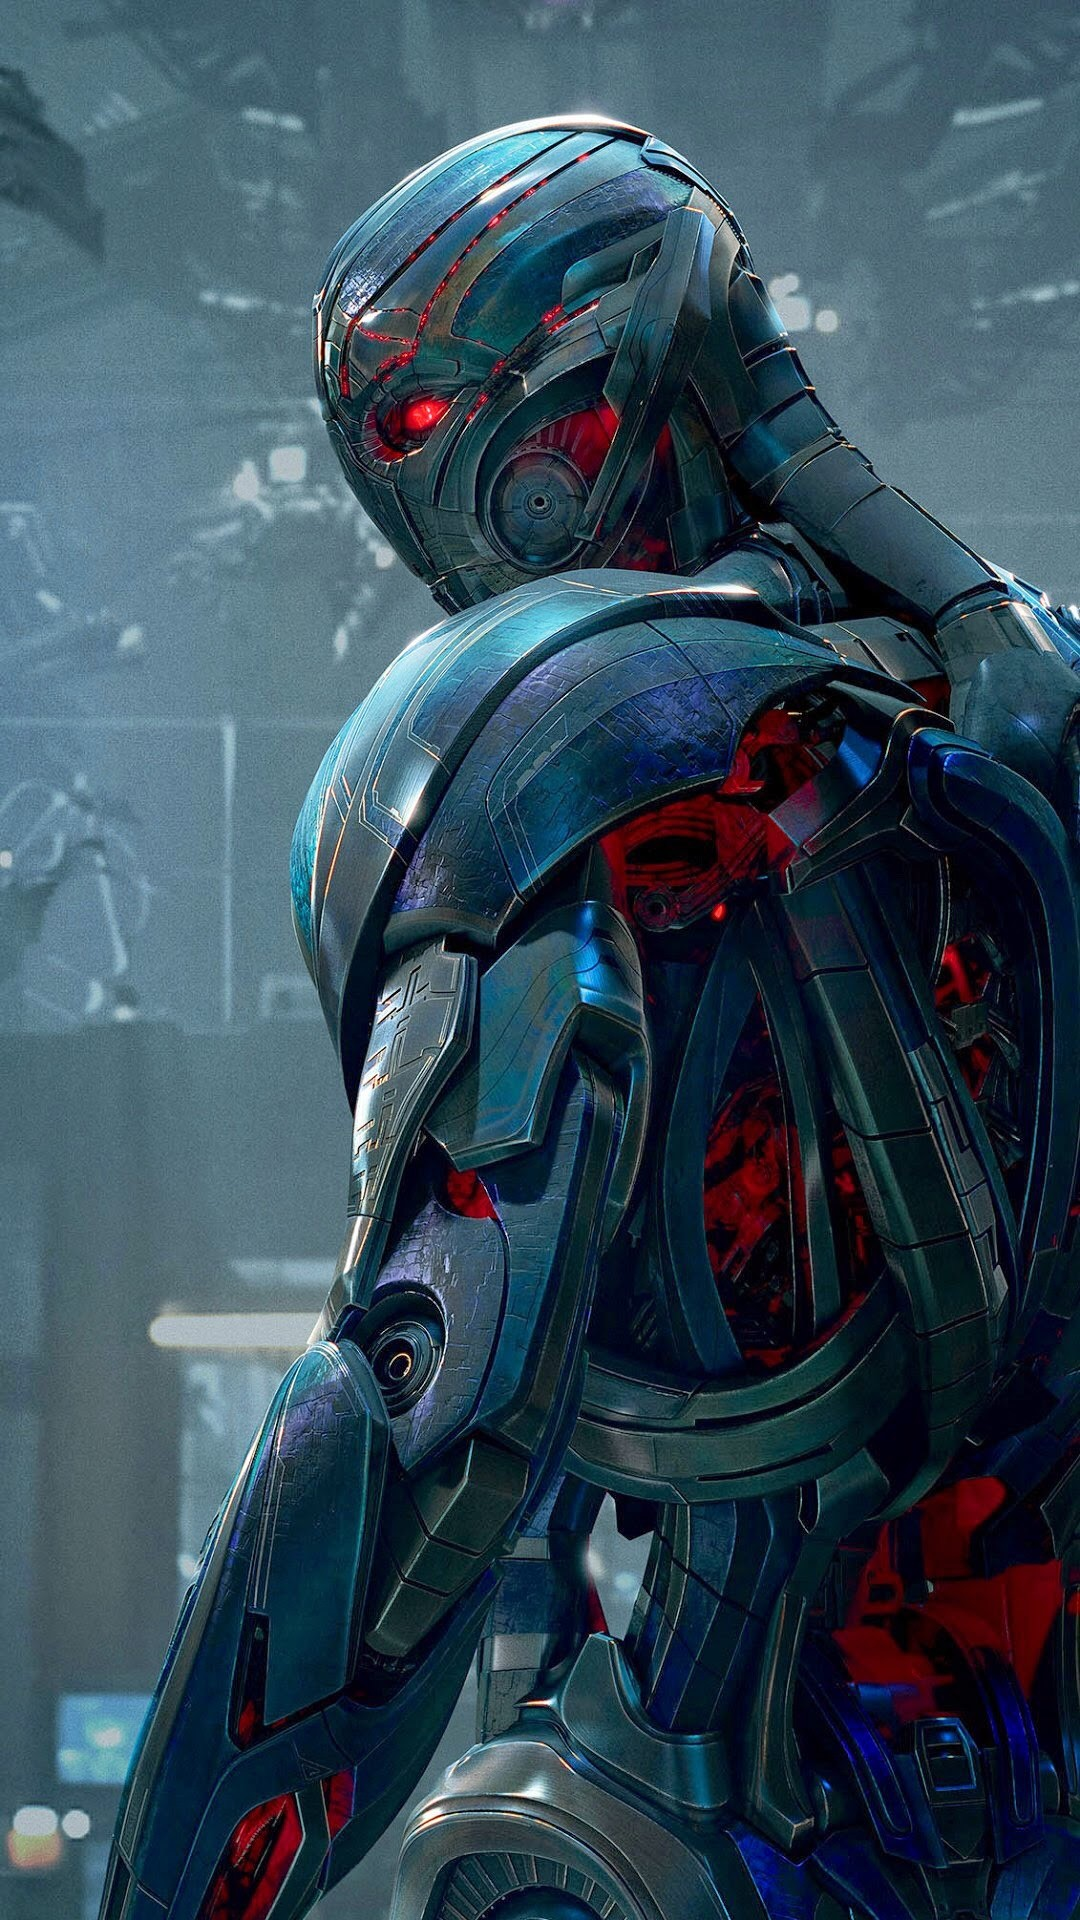 Ultron – Tap to see Avengers: Age of Ultron Apple iPhone HD Wallpapers  Collection – marvel villain